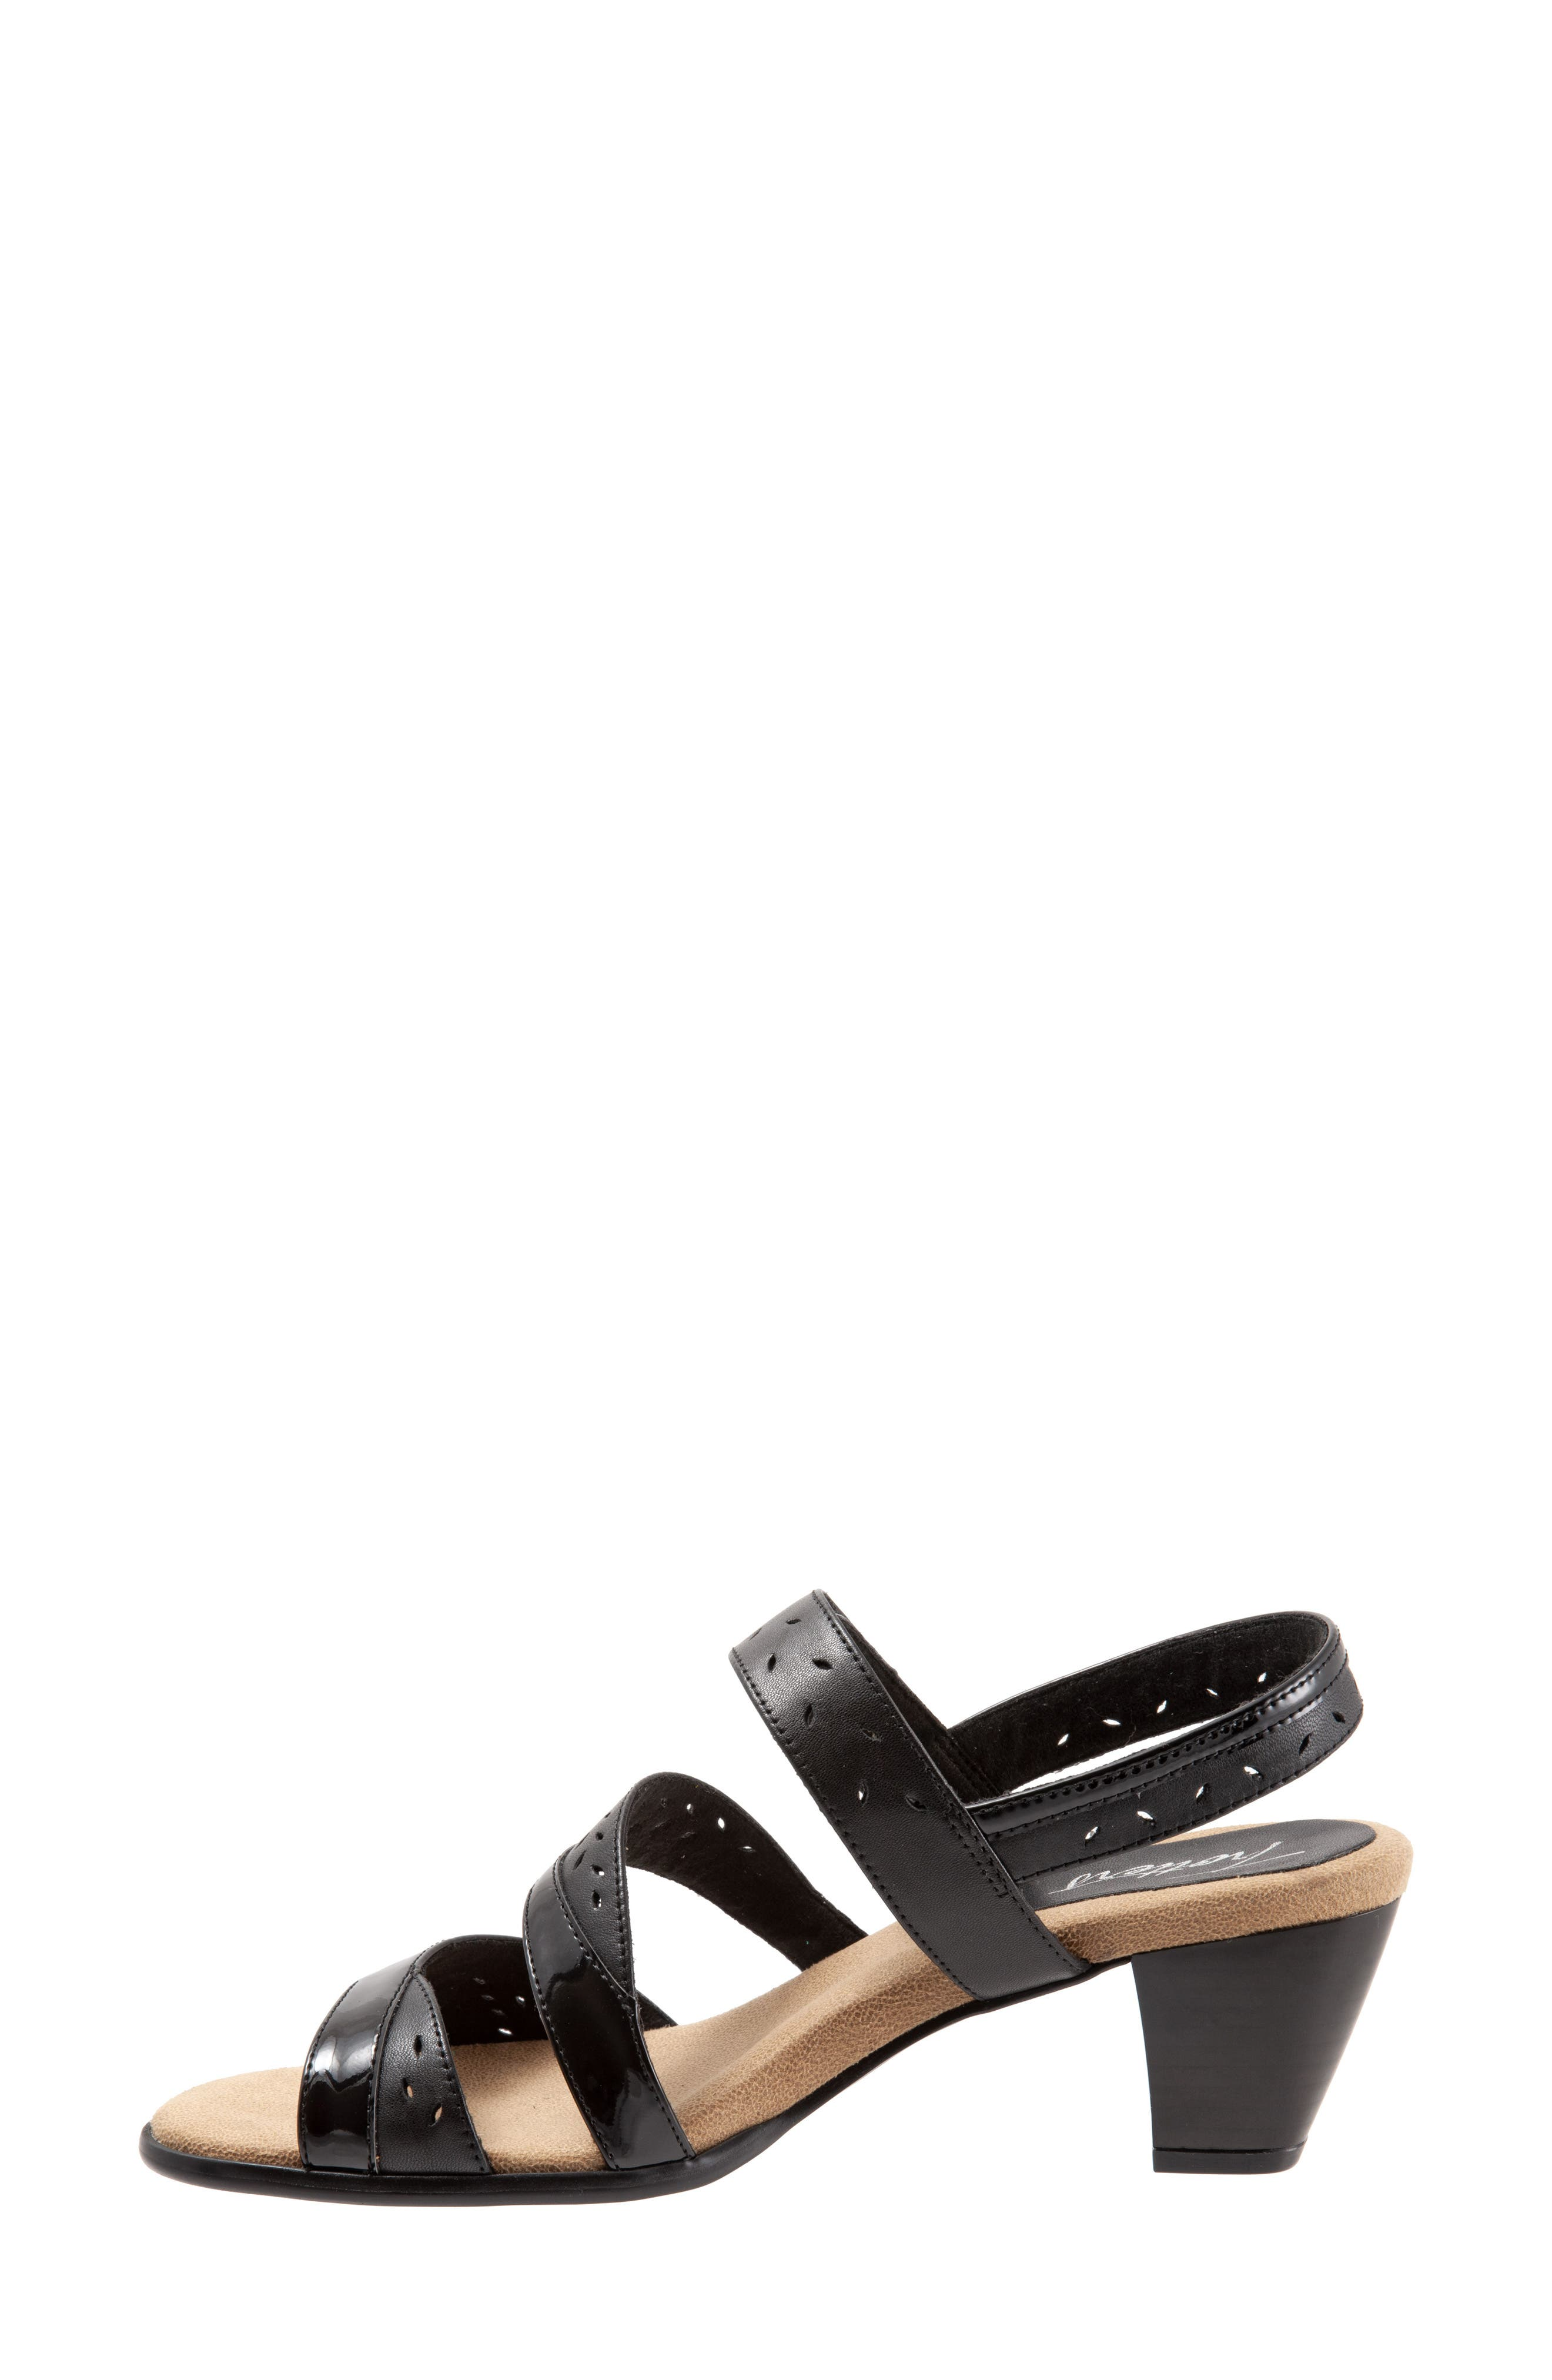 TROTTERS, Marvie Perforated Strappy Sandal, Alternate thumbnail 8, color, BLACK LEATHER